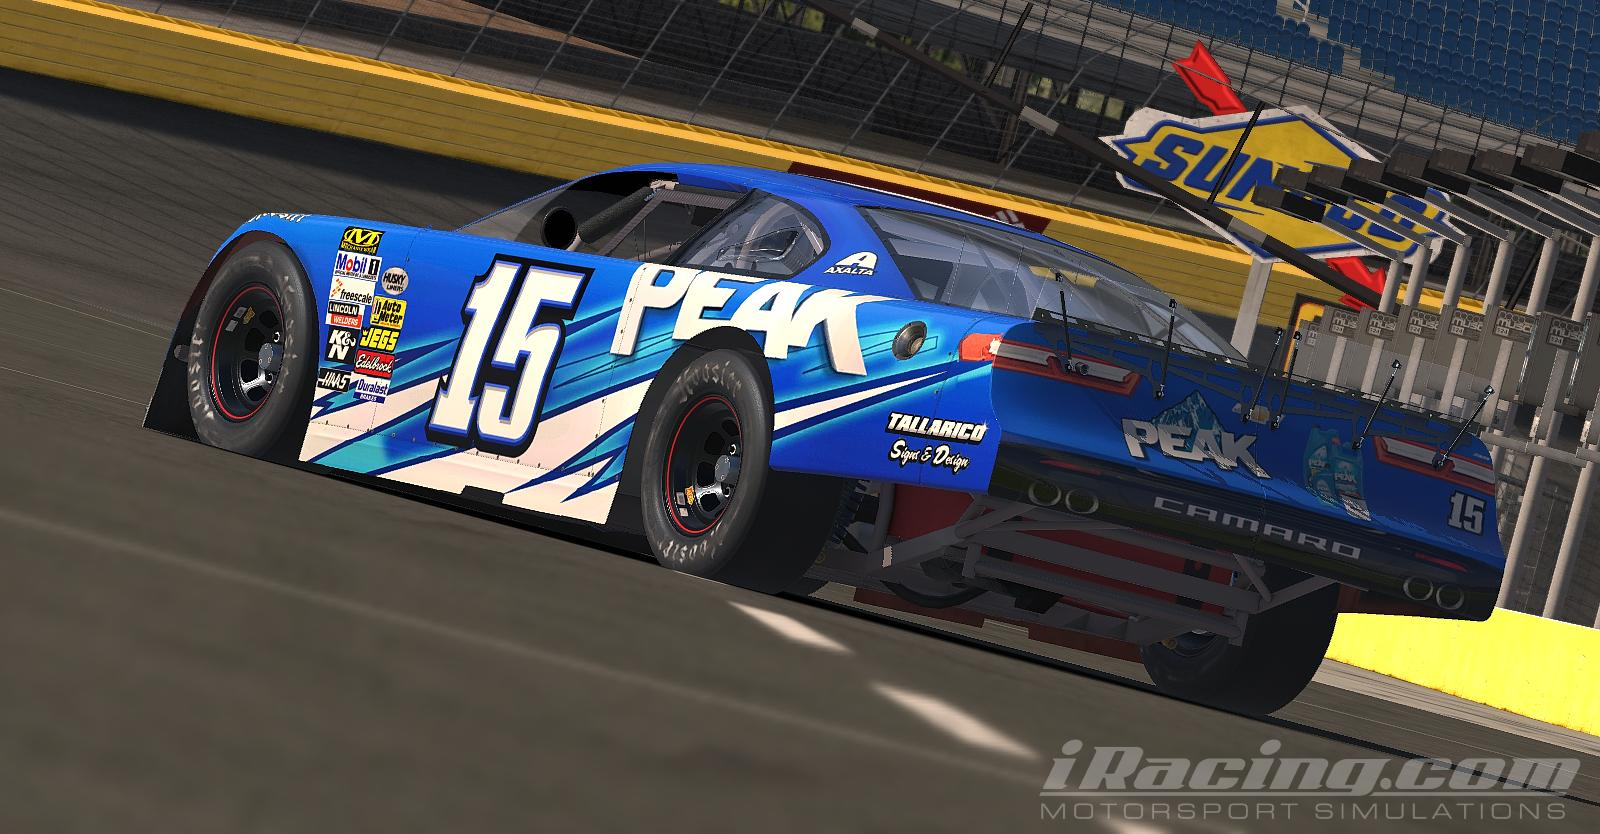 Preview of Peak Antifreeze Super Late Model by Tanner Tallarico